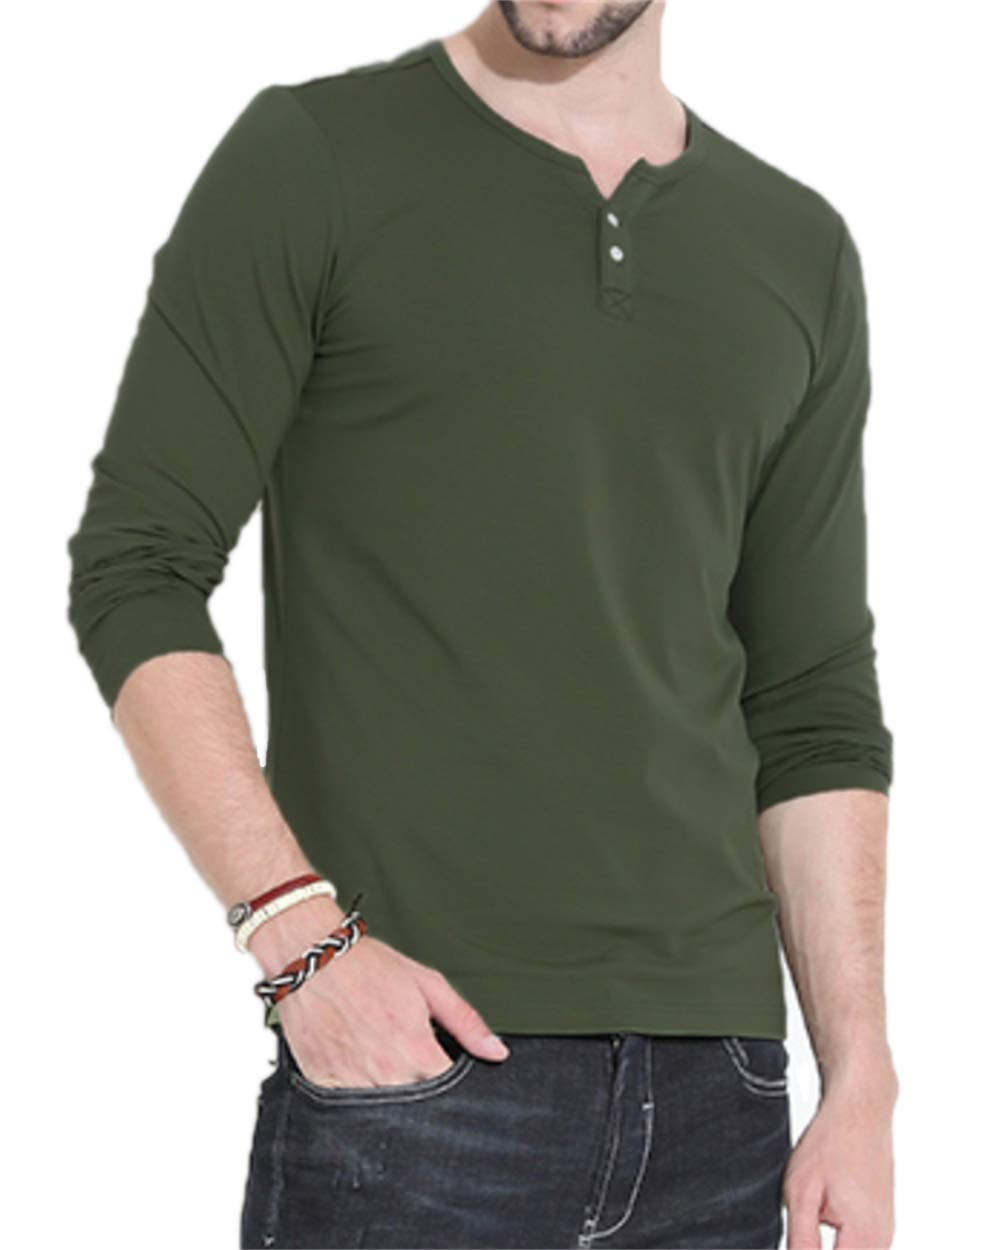 Aiyino Mens Casual Slim Fit Long Sleeve Henley T-Shirts Cotton Shirts US M-C Army Green